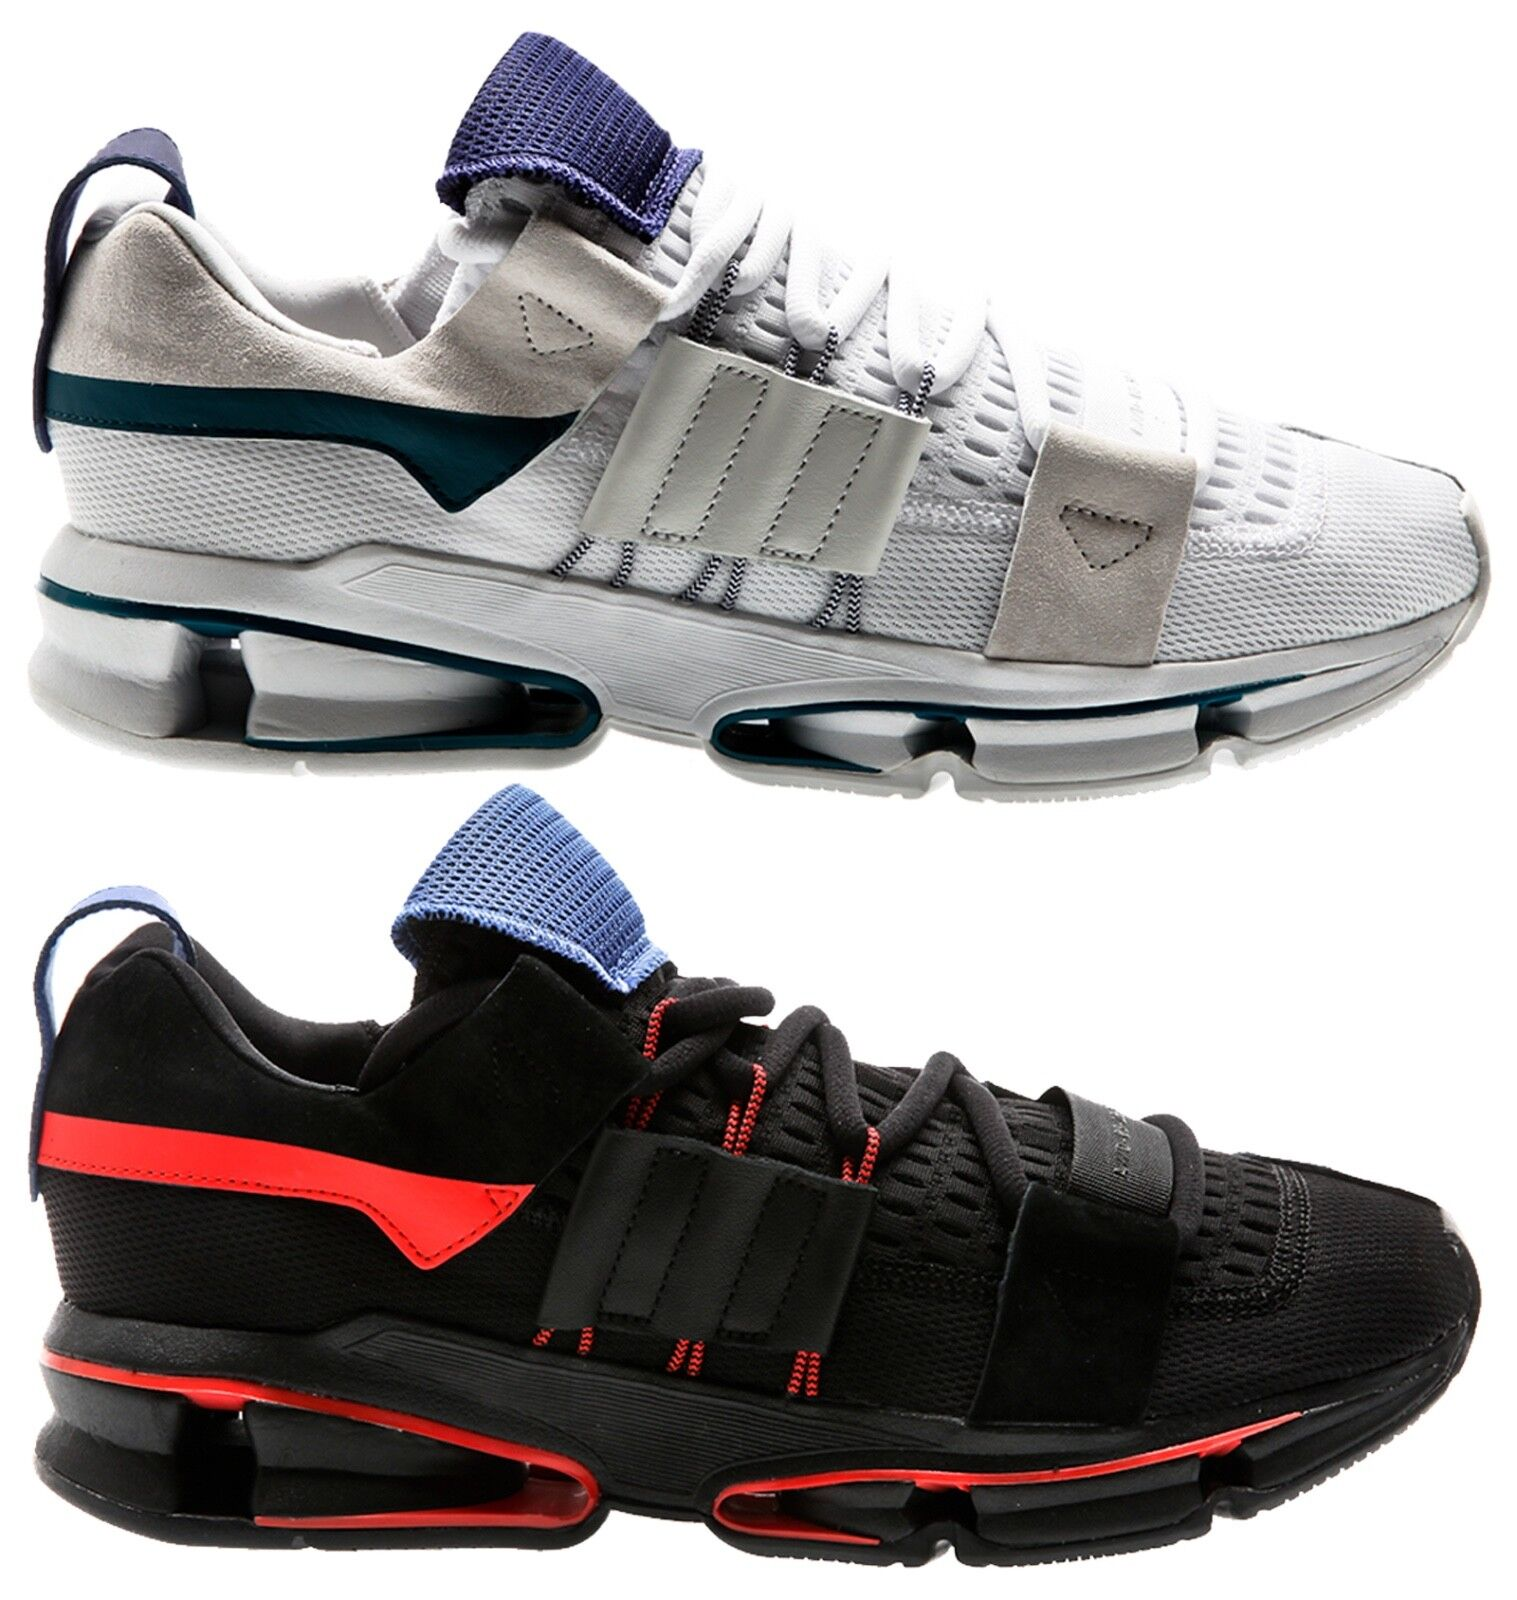 Adidas Originals Twinstrike ADV Men Sneaker Mens Shoes Running Shoe